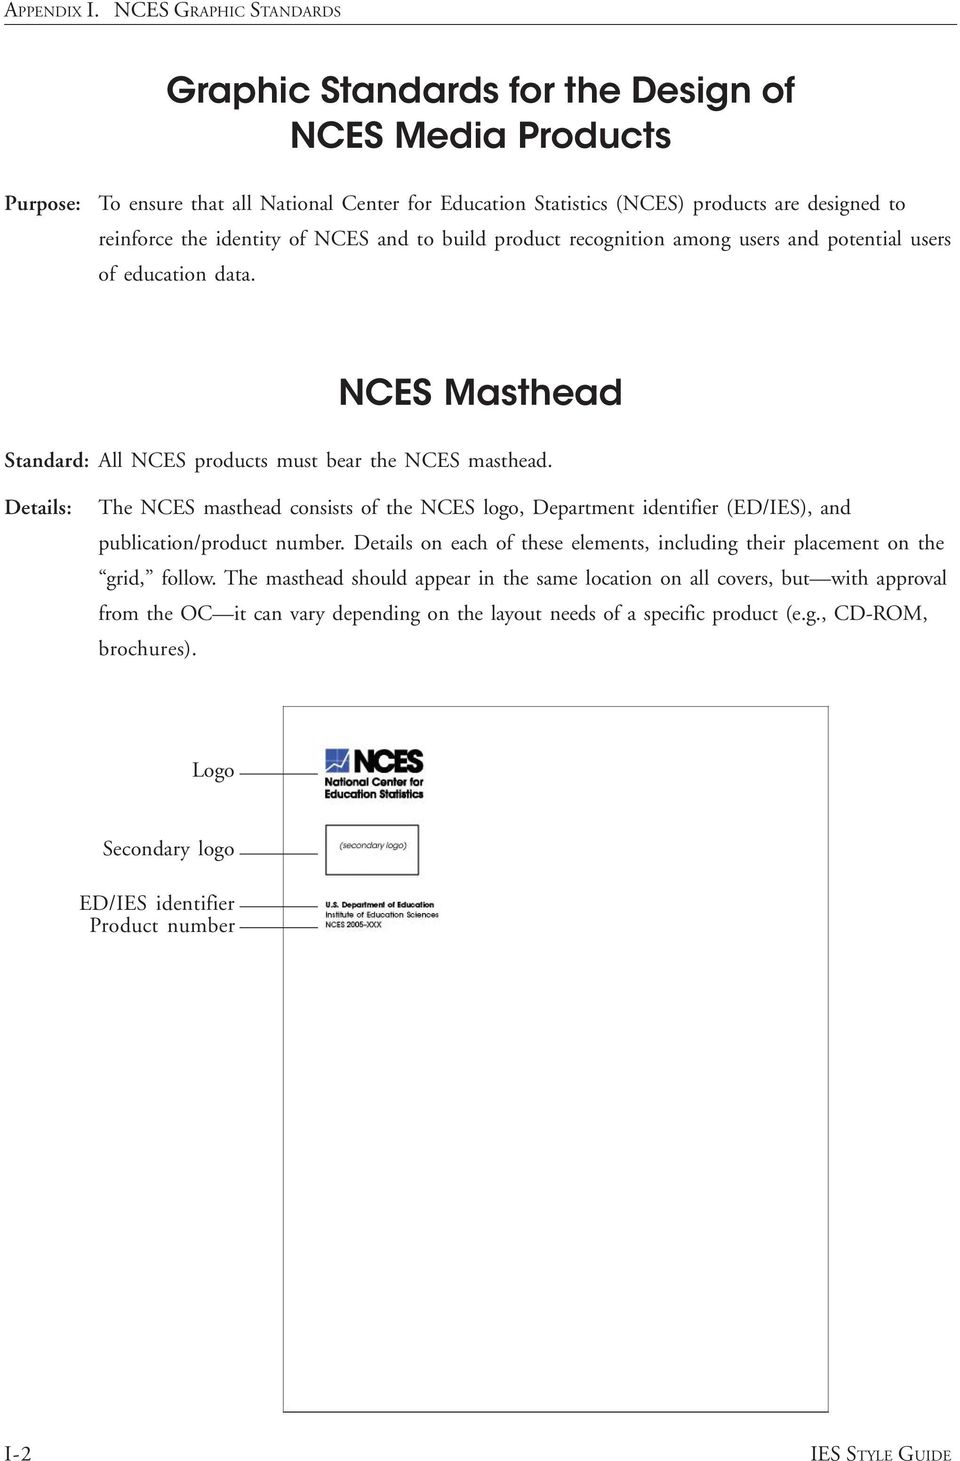 The NCES masthead consists of the NCES logo, Department identifier (ED/IES), and publication/product number. Details on each of these elements, including their placement on the grid, follow.